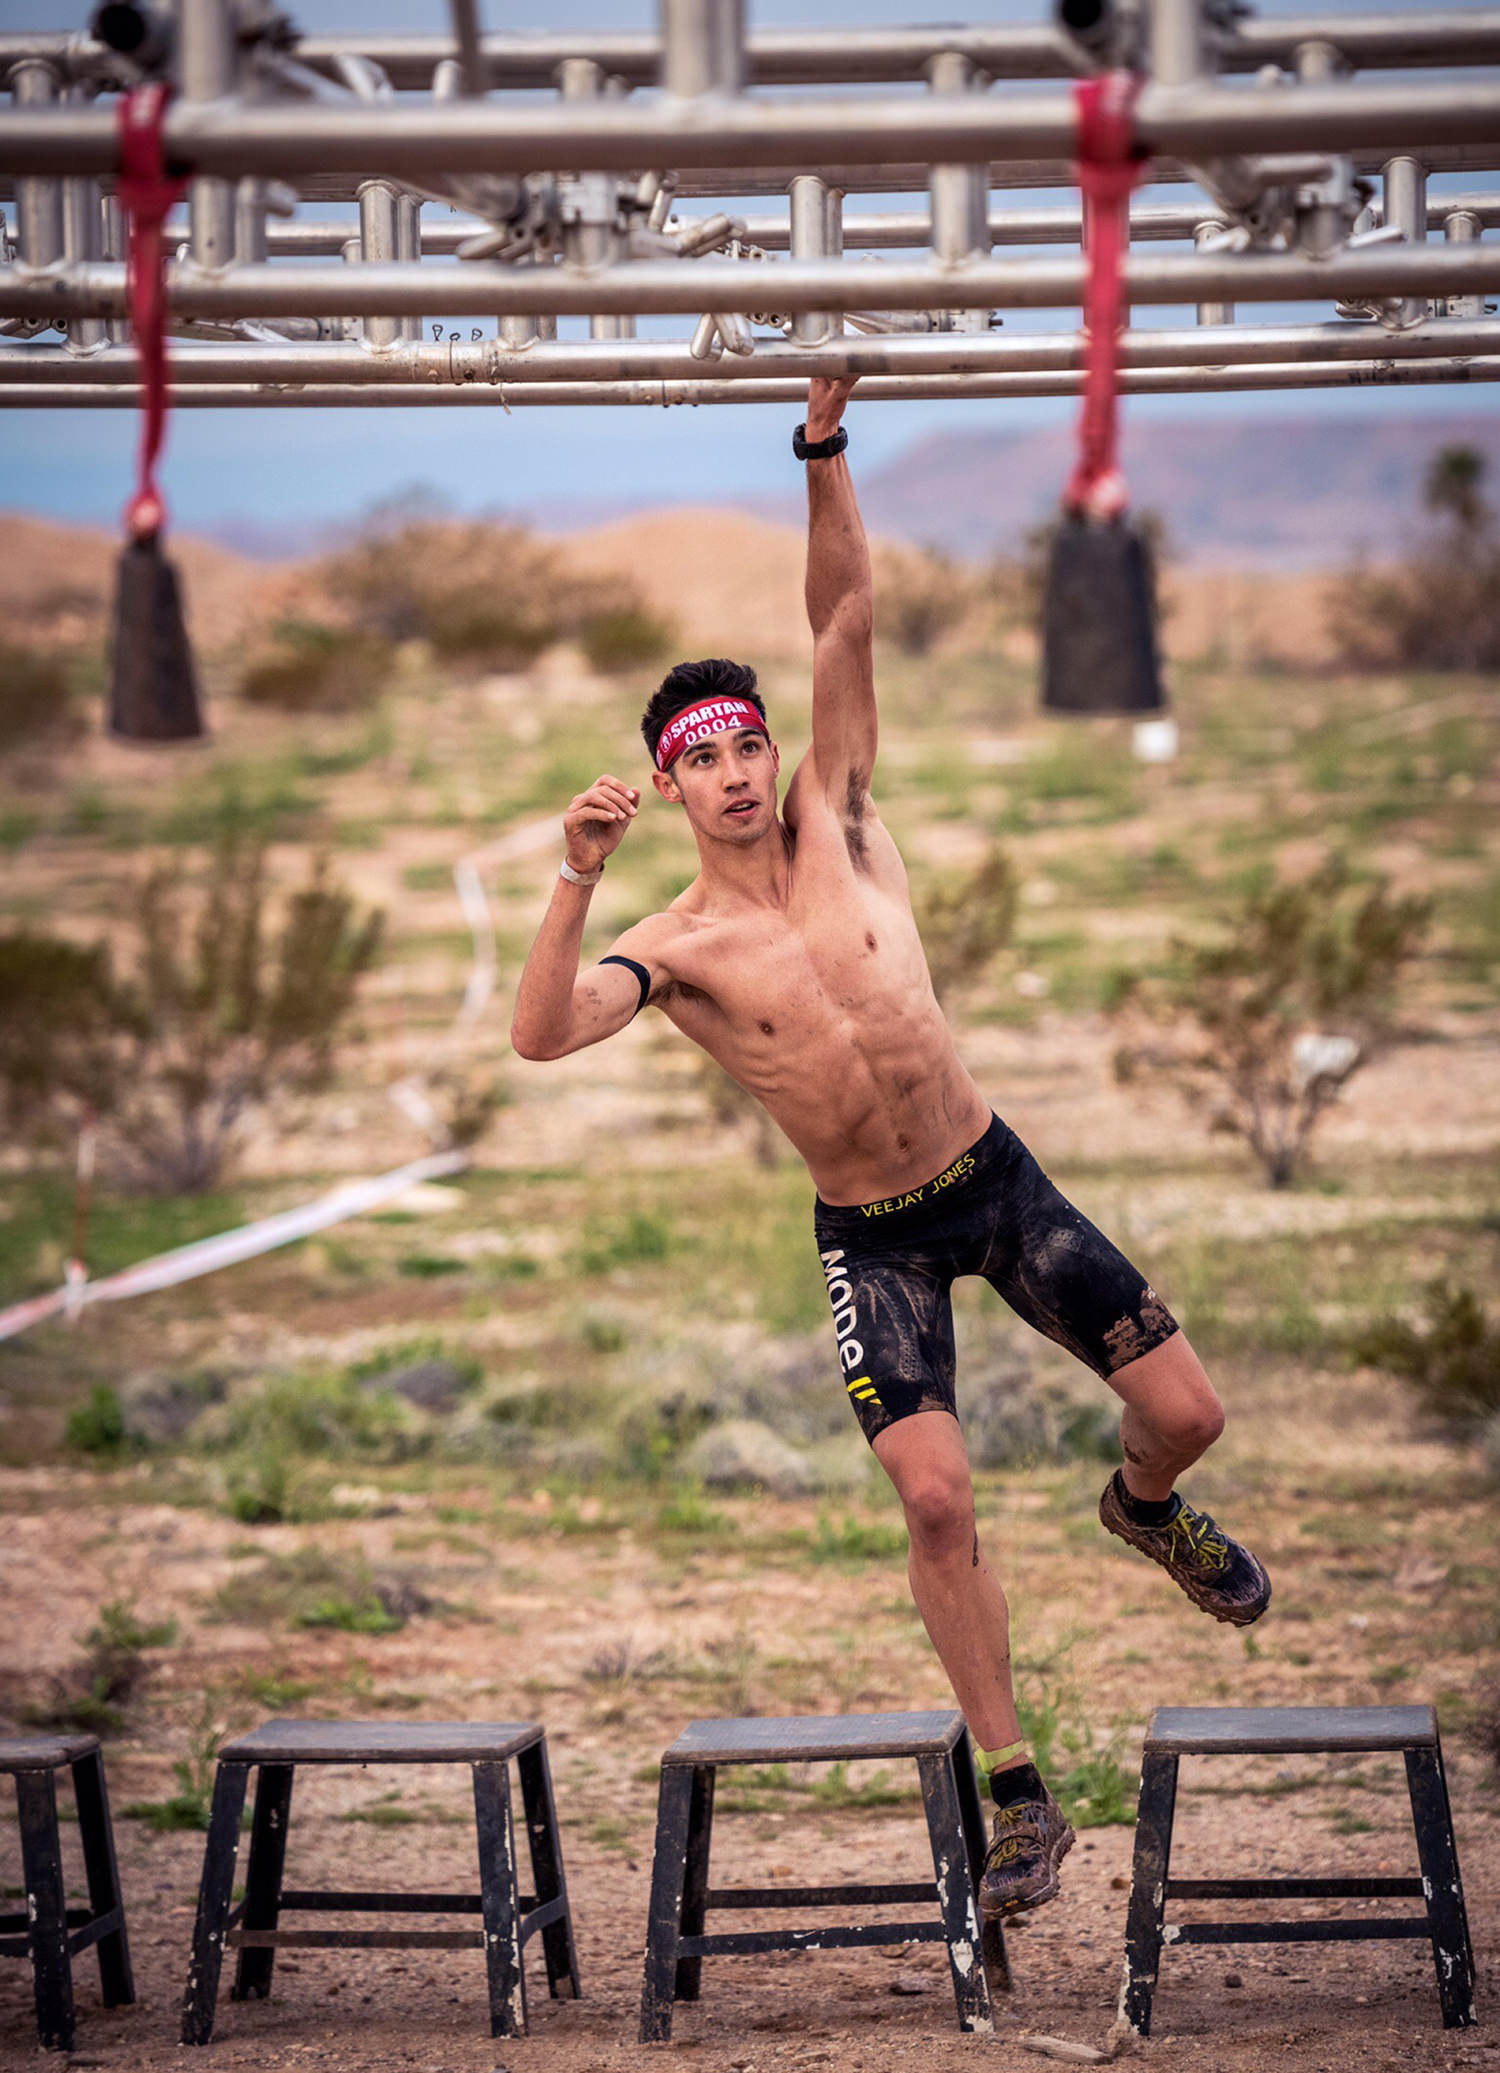 Veejay Jones is the youngest ever Spartan Race winner and nationally ranked OCR athlete